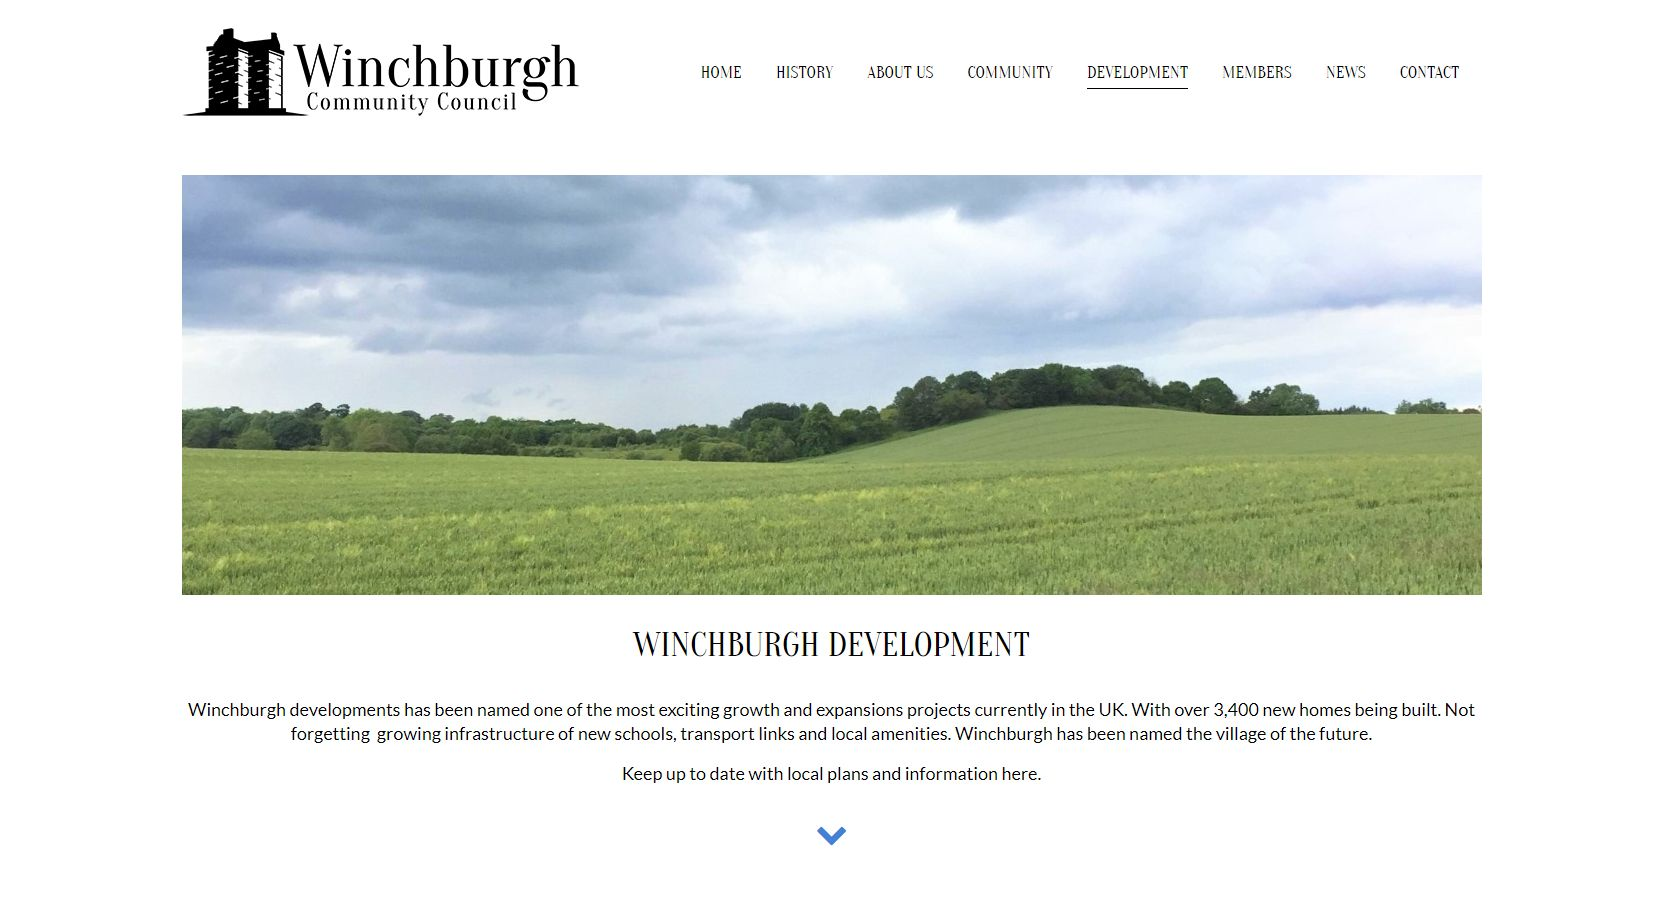 Winchburgh Community Council Development